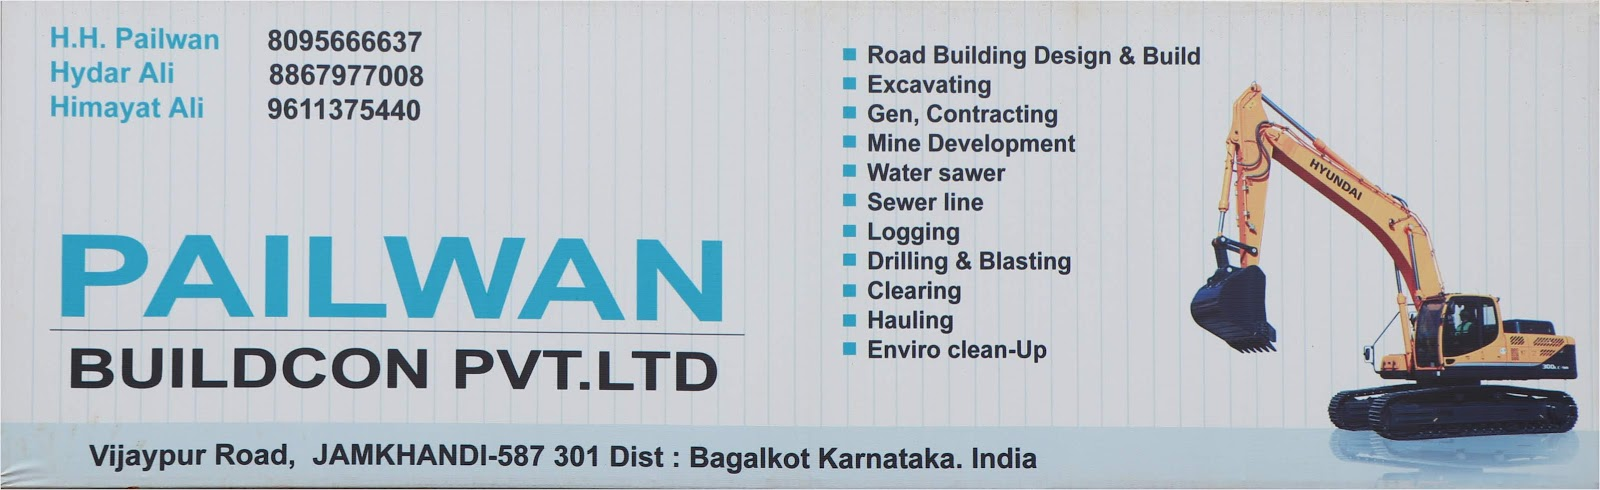 Company View - Pailwan Buildcon Private Limited , Best Contractor and Construction Company in Jamakhandi - Best Road Construction Company in Jamakhandi Bagalkot Karnataka,Best Road Contractor in Jamakhandi Bagalkot Karnataka,Best Building Contractors in Jamakhandi Bagalkot Karnataka,Best Civil Contractors in Jamakhandi Bagalkot Karnataka,Best Contractors in Jamakhandi Bagalkot Karnataka,Best Excavating Service Company in Jamakhandi bagalkot Karnataka,Best General Contracting Company in Jamakhandi bagalkot Karnataka,Best Mine Development Company in Jamakhandi Bagalkot Karnataka,Best Water Lines Construction Company in Jamakhandi Bagalkot Karnataka,Best Sewer Lines Construction Company in Jamakhandi Bagalkot Karnataka,Best Logging Service Company in Jamakhandi Bagalkot Karnataka,Best Logging Service Company in Jamakhandi Bagalkot Karnataka,Best Drilling and Blasting Service Company in Jamakhandi Bagalkot Karnataka,Best Clearing and Hauling Service Company in Jamakhandi Bagalkot Karnataka,Best Envirocleanup  Service Company in Jamakhandi Bagalkot Karnataka, contractors in Karnataka, road contractors in Karnataka, civil contractors in Karnataka, civil contractors in bagalkot, civil contractors in jamakhandi, civil contractors in athani, civil contractors in near me, road construction contractors in Karnataka, road construction contractors in jamakhandi, road construction contractors in bahalkot, road construction contractors in bijapur, road construction contractors in athani, top contractors in Karnataka, top contractors in jamakhandi, top contractors in bagalkot, top contractors in athani, top civil contractors in jamakhandi, top civil contractors in belagavi, top civil contractors in athani,  water supply contractors in Karnataka, water supply contractors in jamakhandi,  water supply contractors in bagalkot, waterproofing contractors in jamakhandi, waterproofing contractors in Karnataka, waterproofing contractors, road building materials, road building equipments, ro